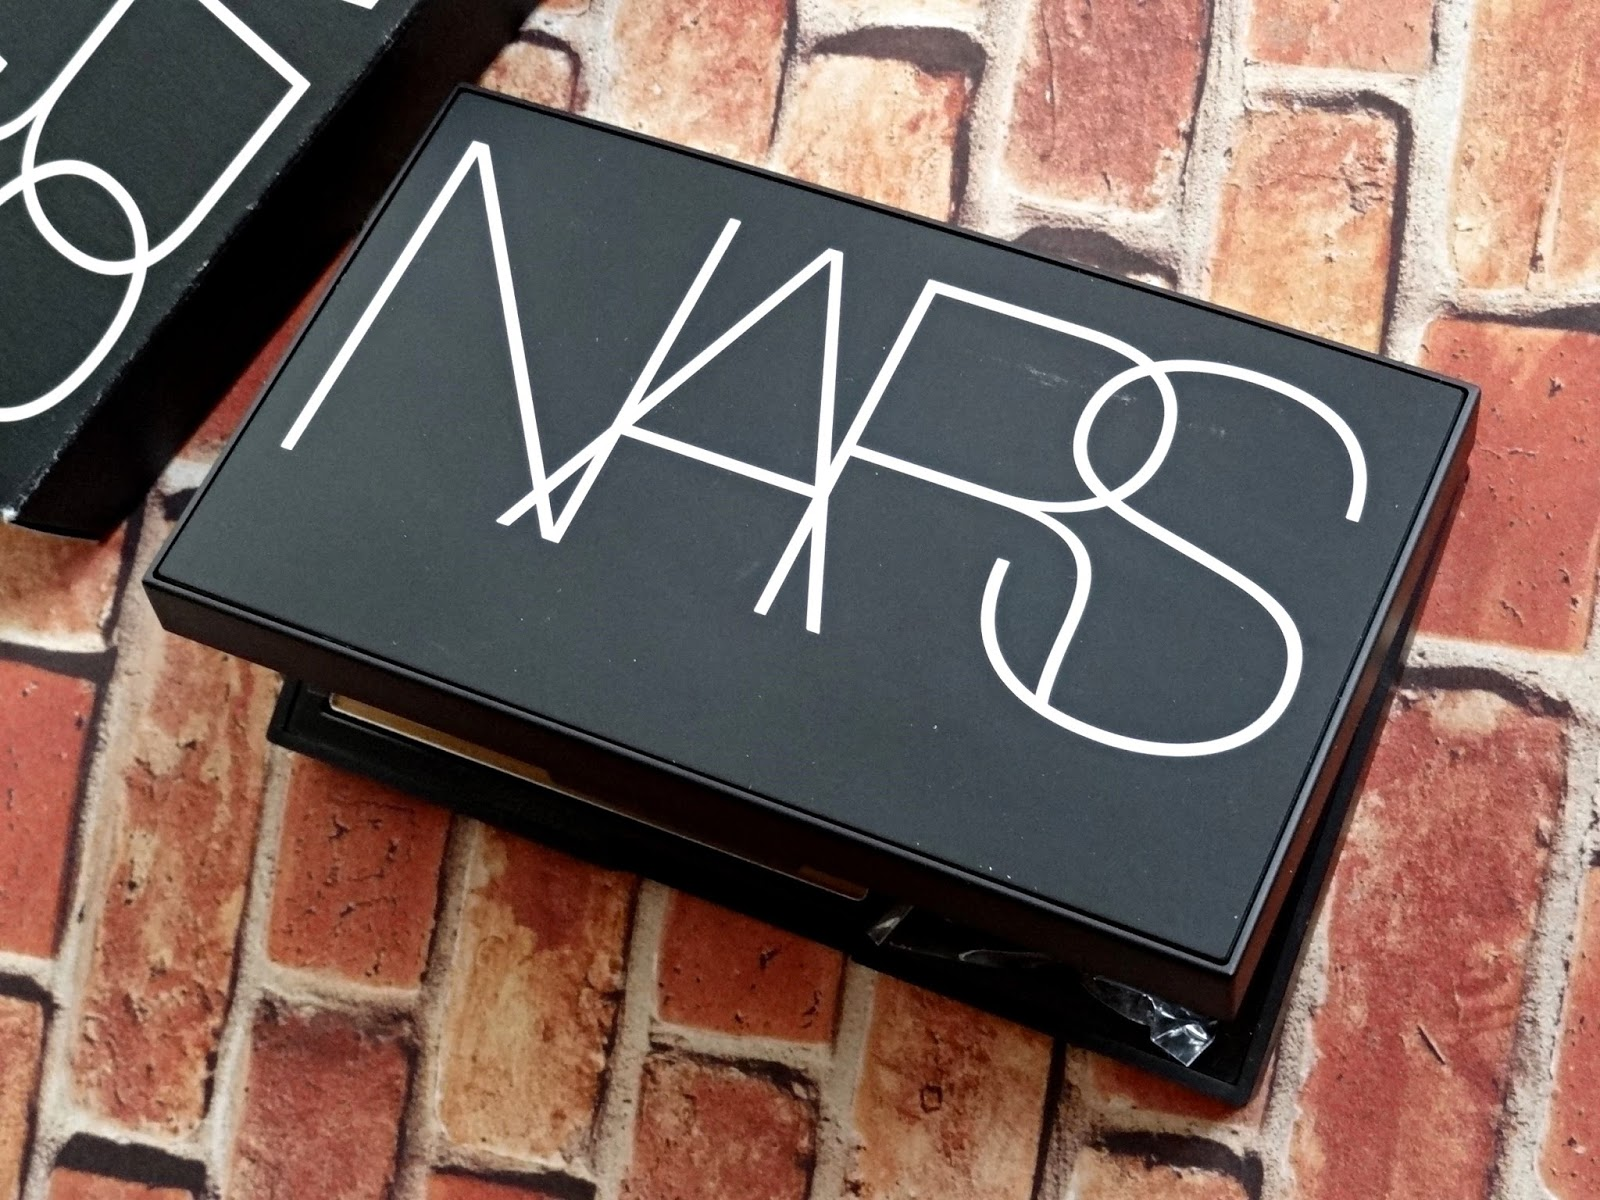 NARS Tahiti Bronzer | NARS Last Resort Collection